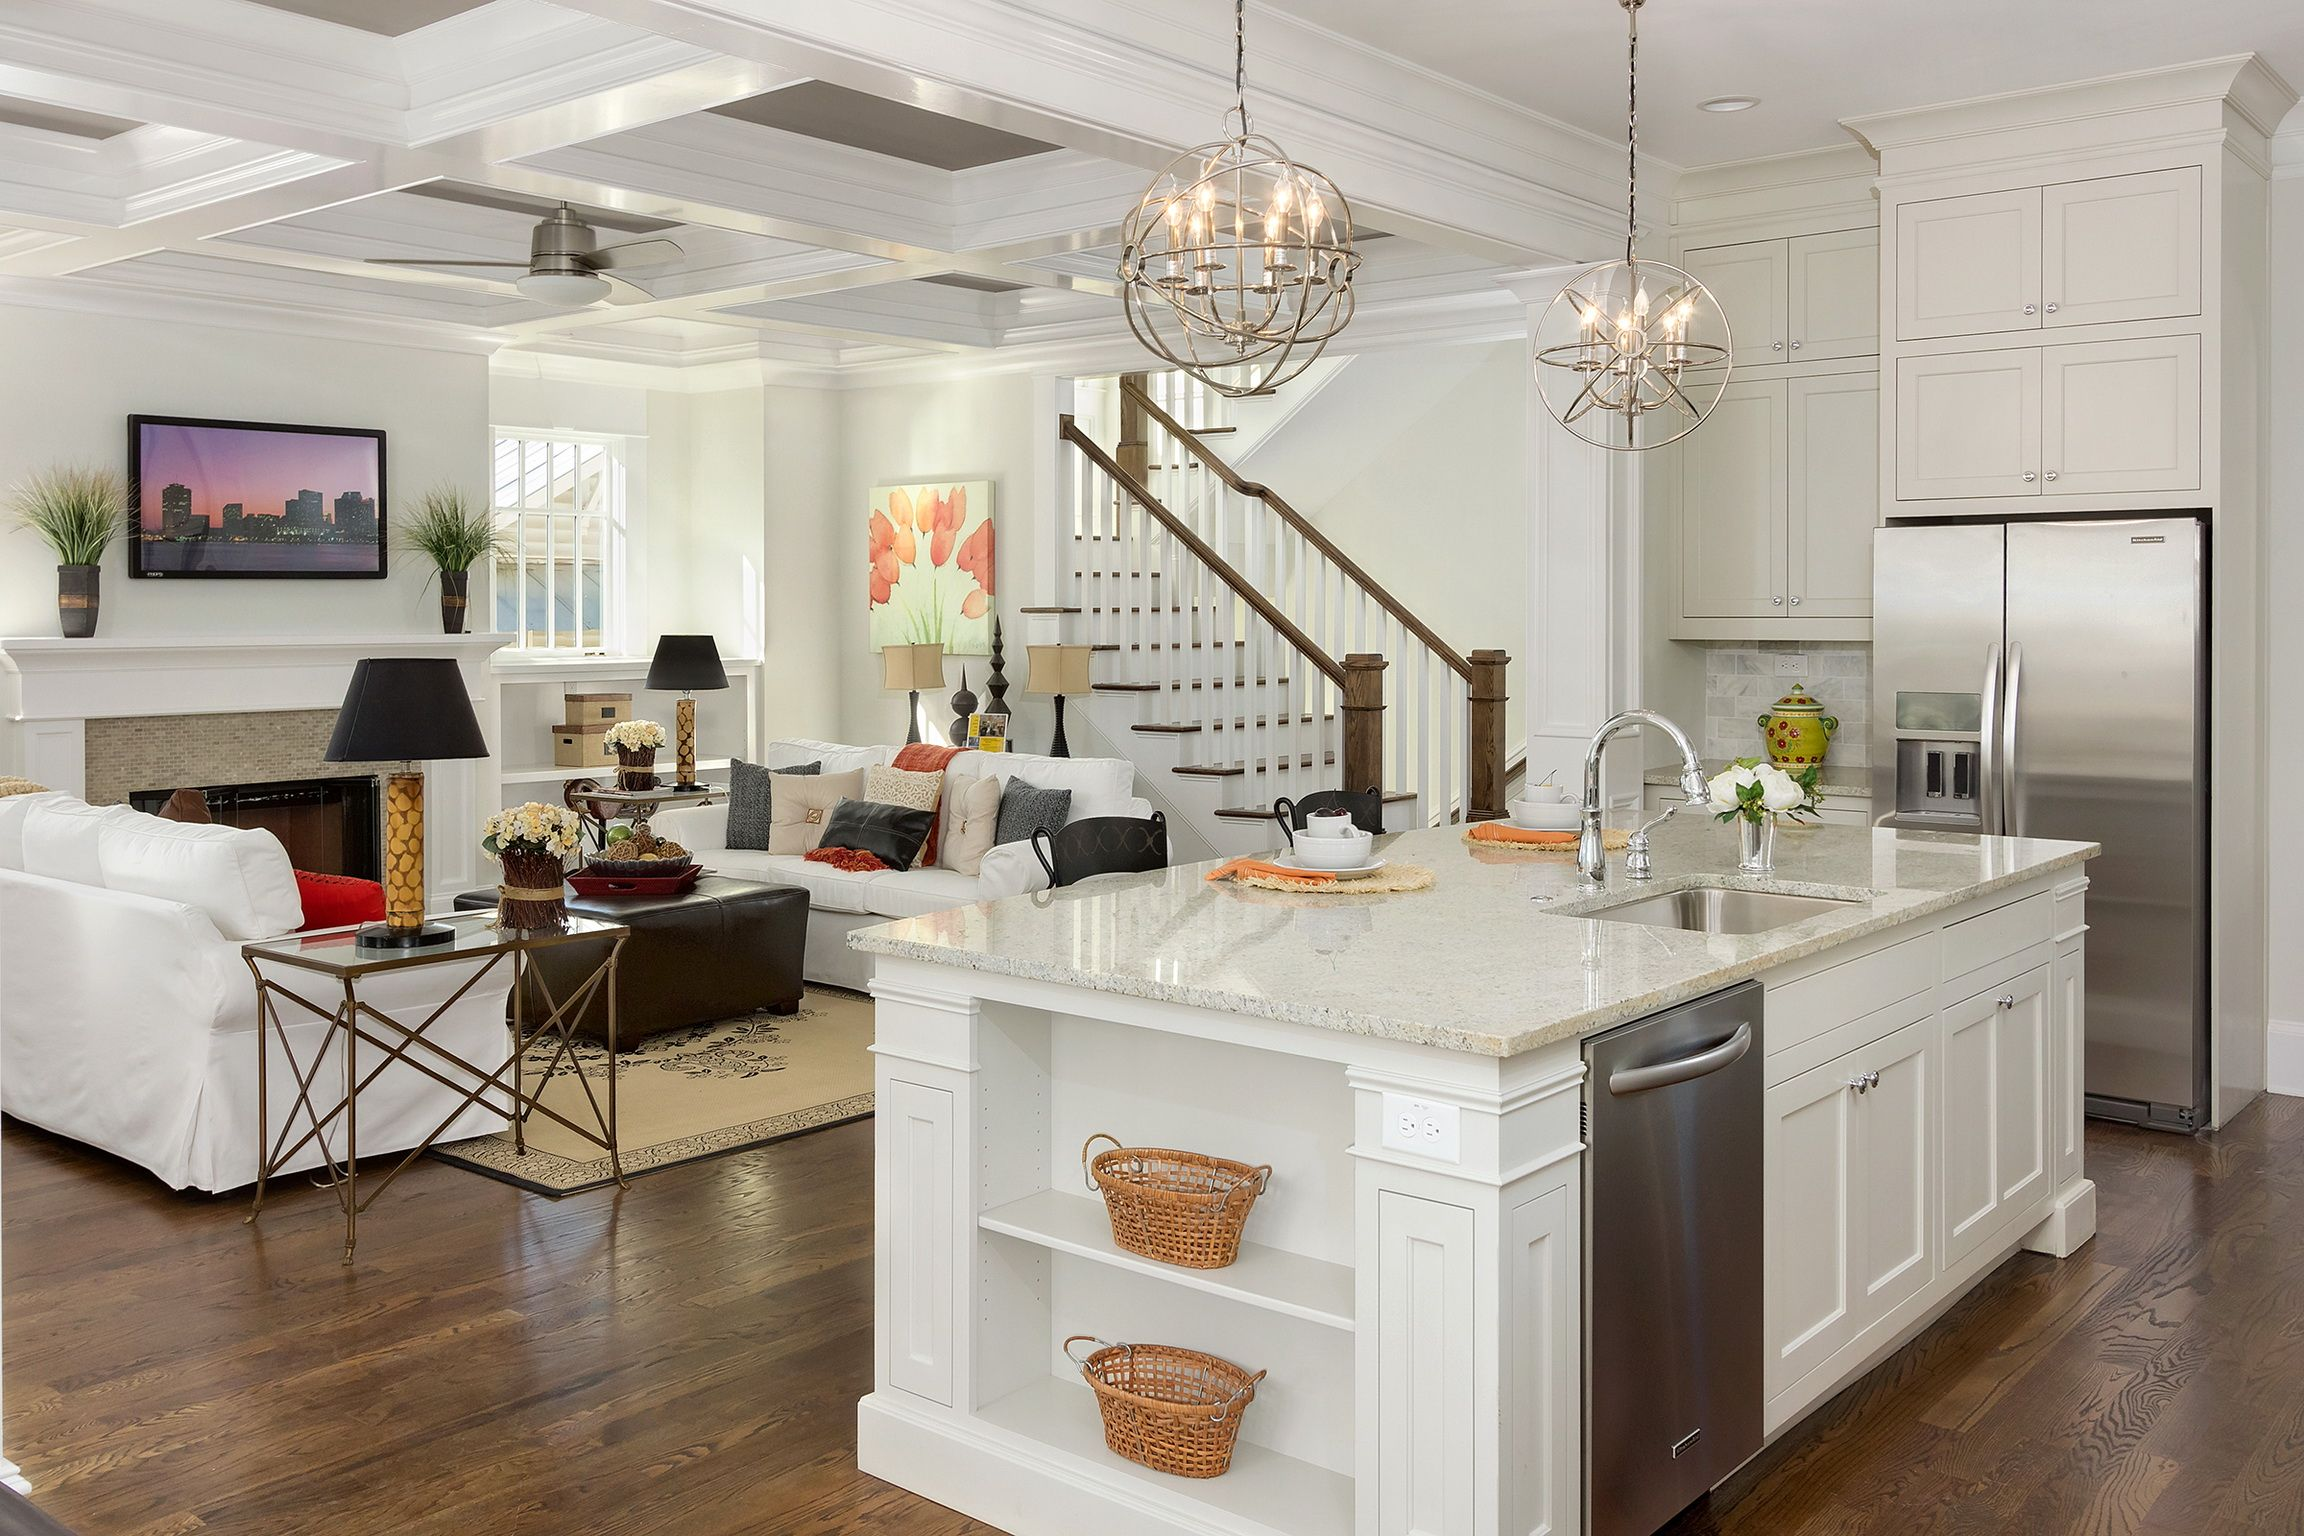 Remarkable Kitchen Inspired With Double Globe Chandelier Lamps And White  Wall Paint Color And Wooden Floor